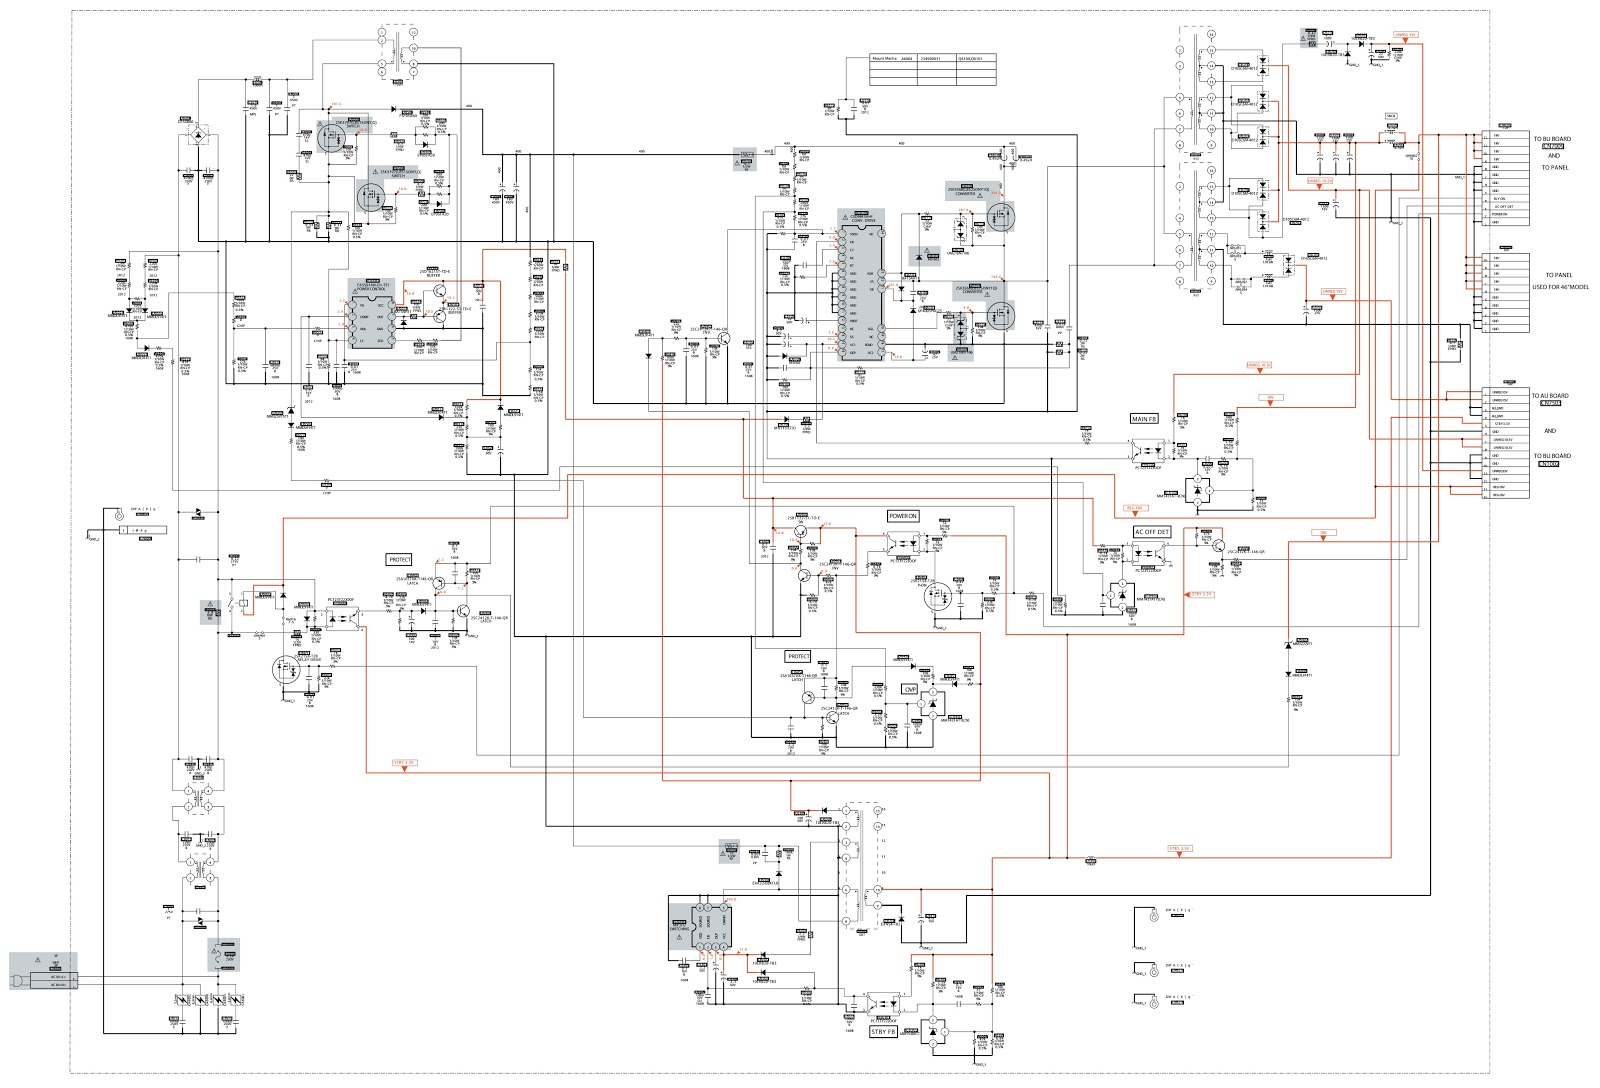 sony klv 32ex330 circuit diagram